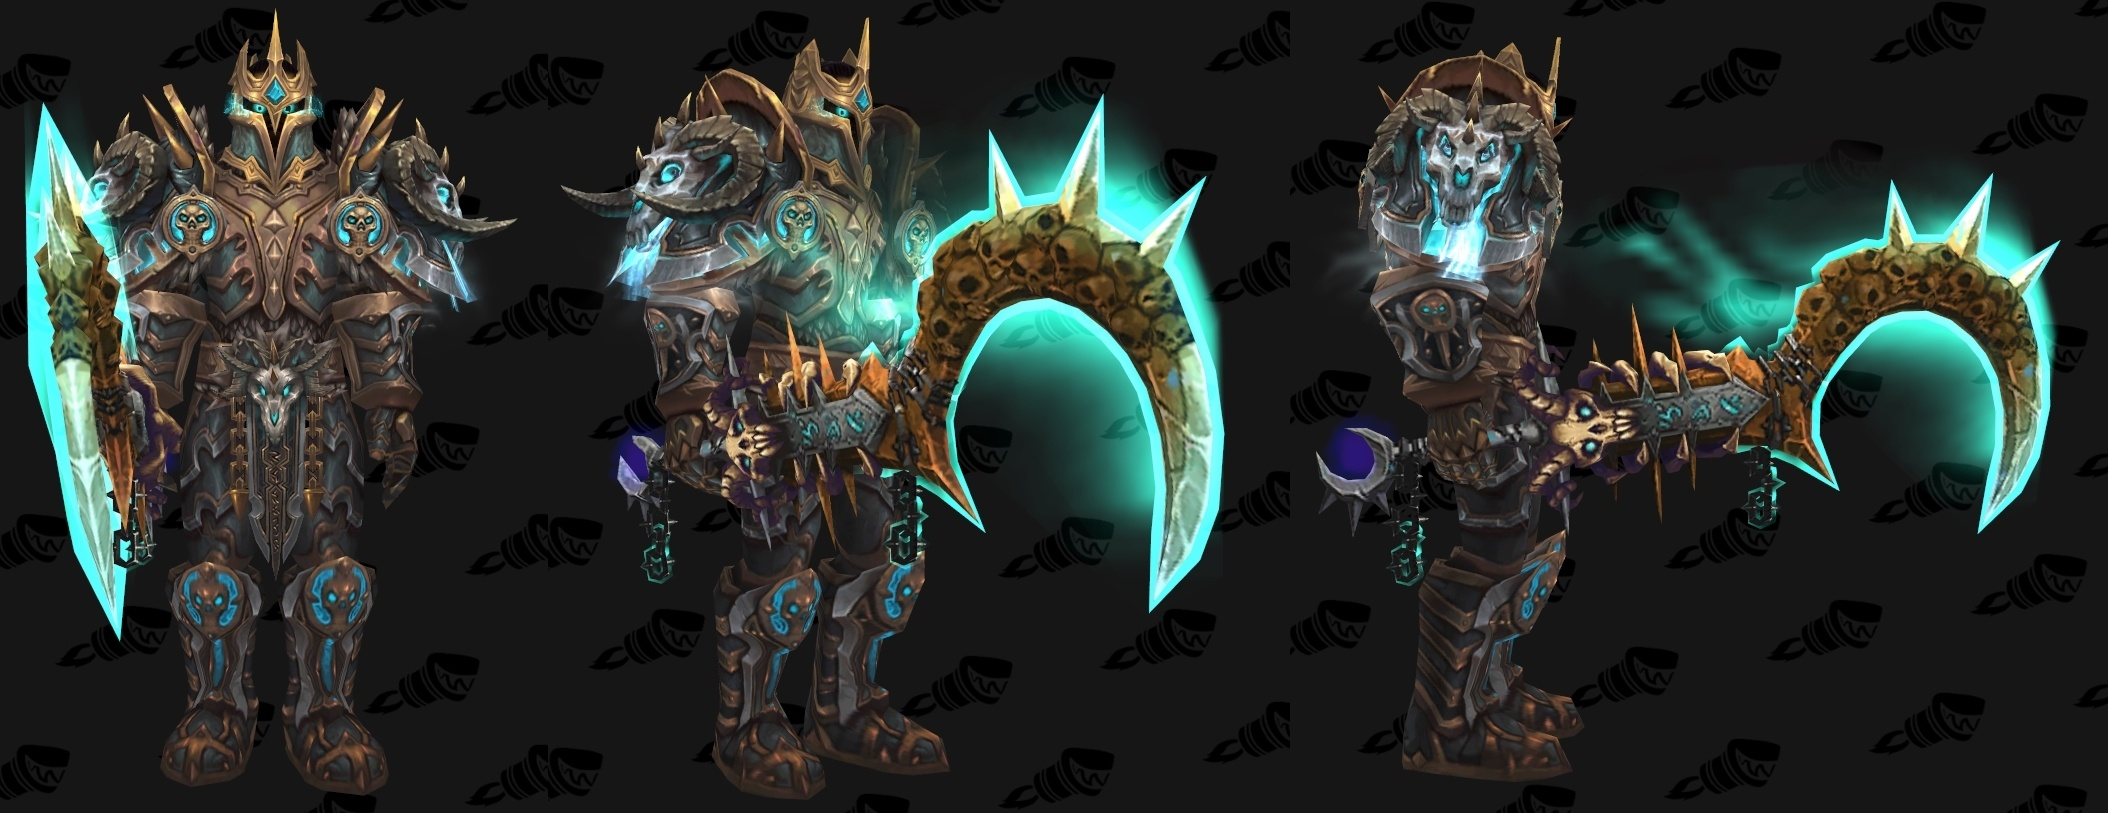 Warrior Tier 19 Mythic Missing Shoulders And Belt Wow